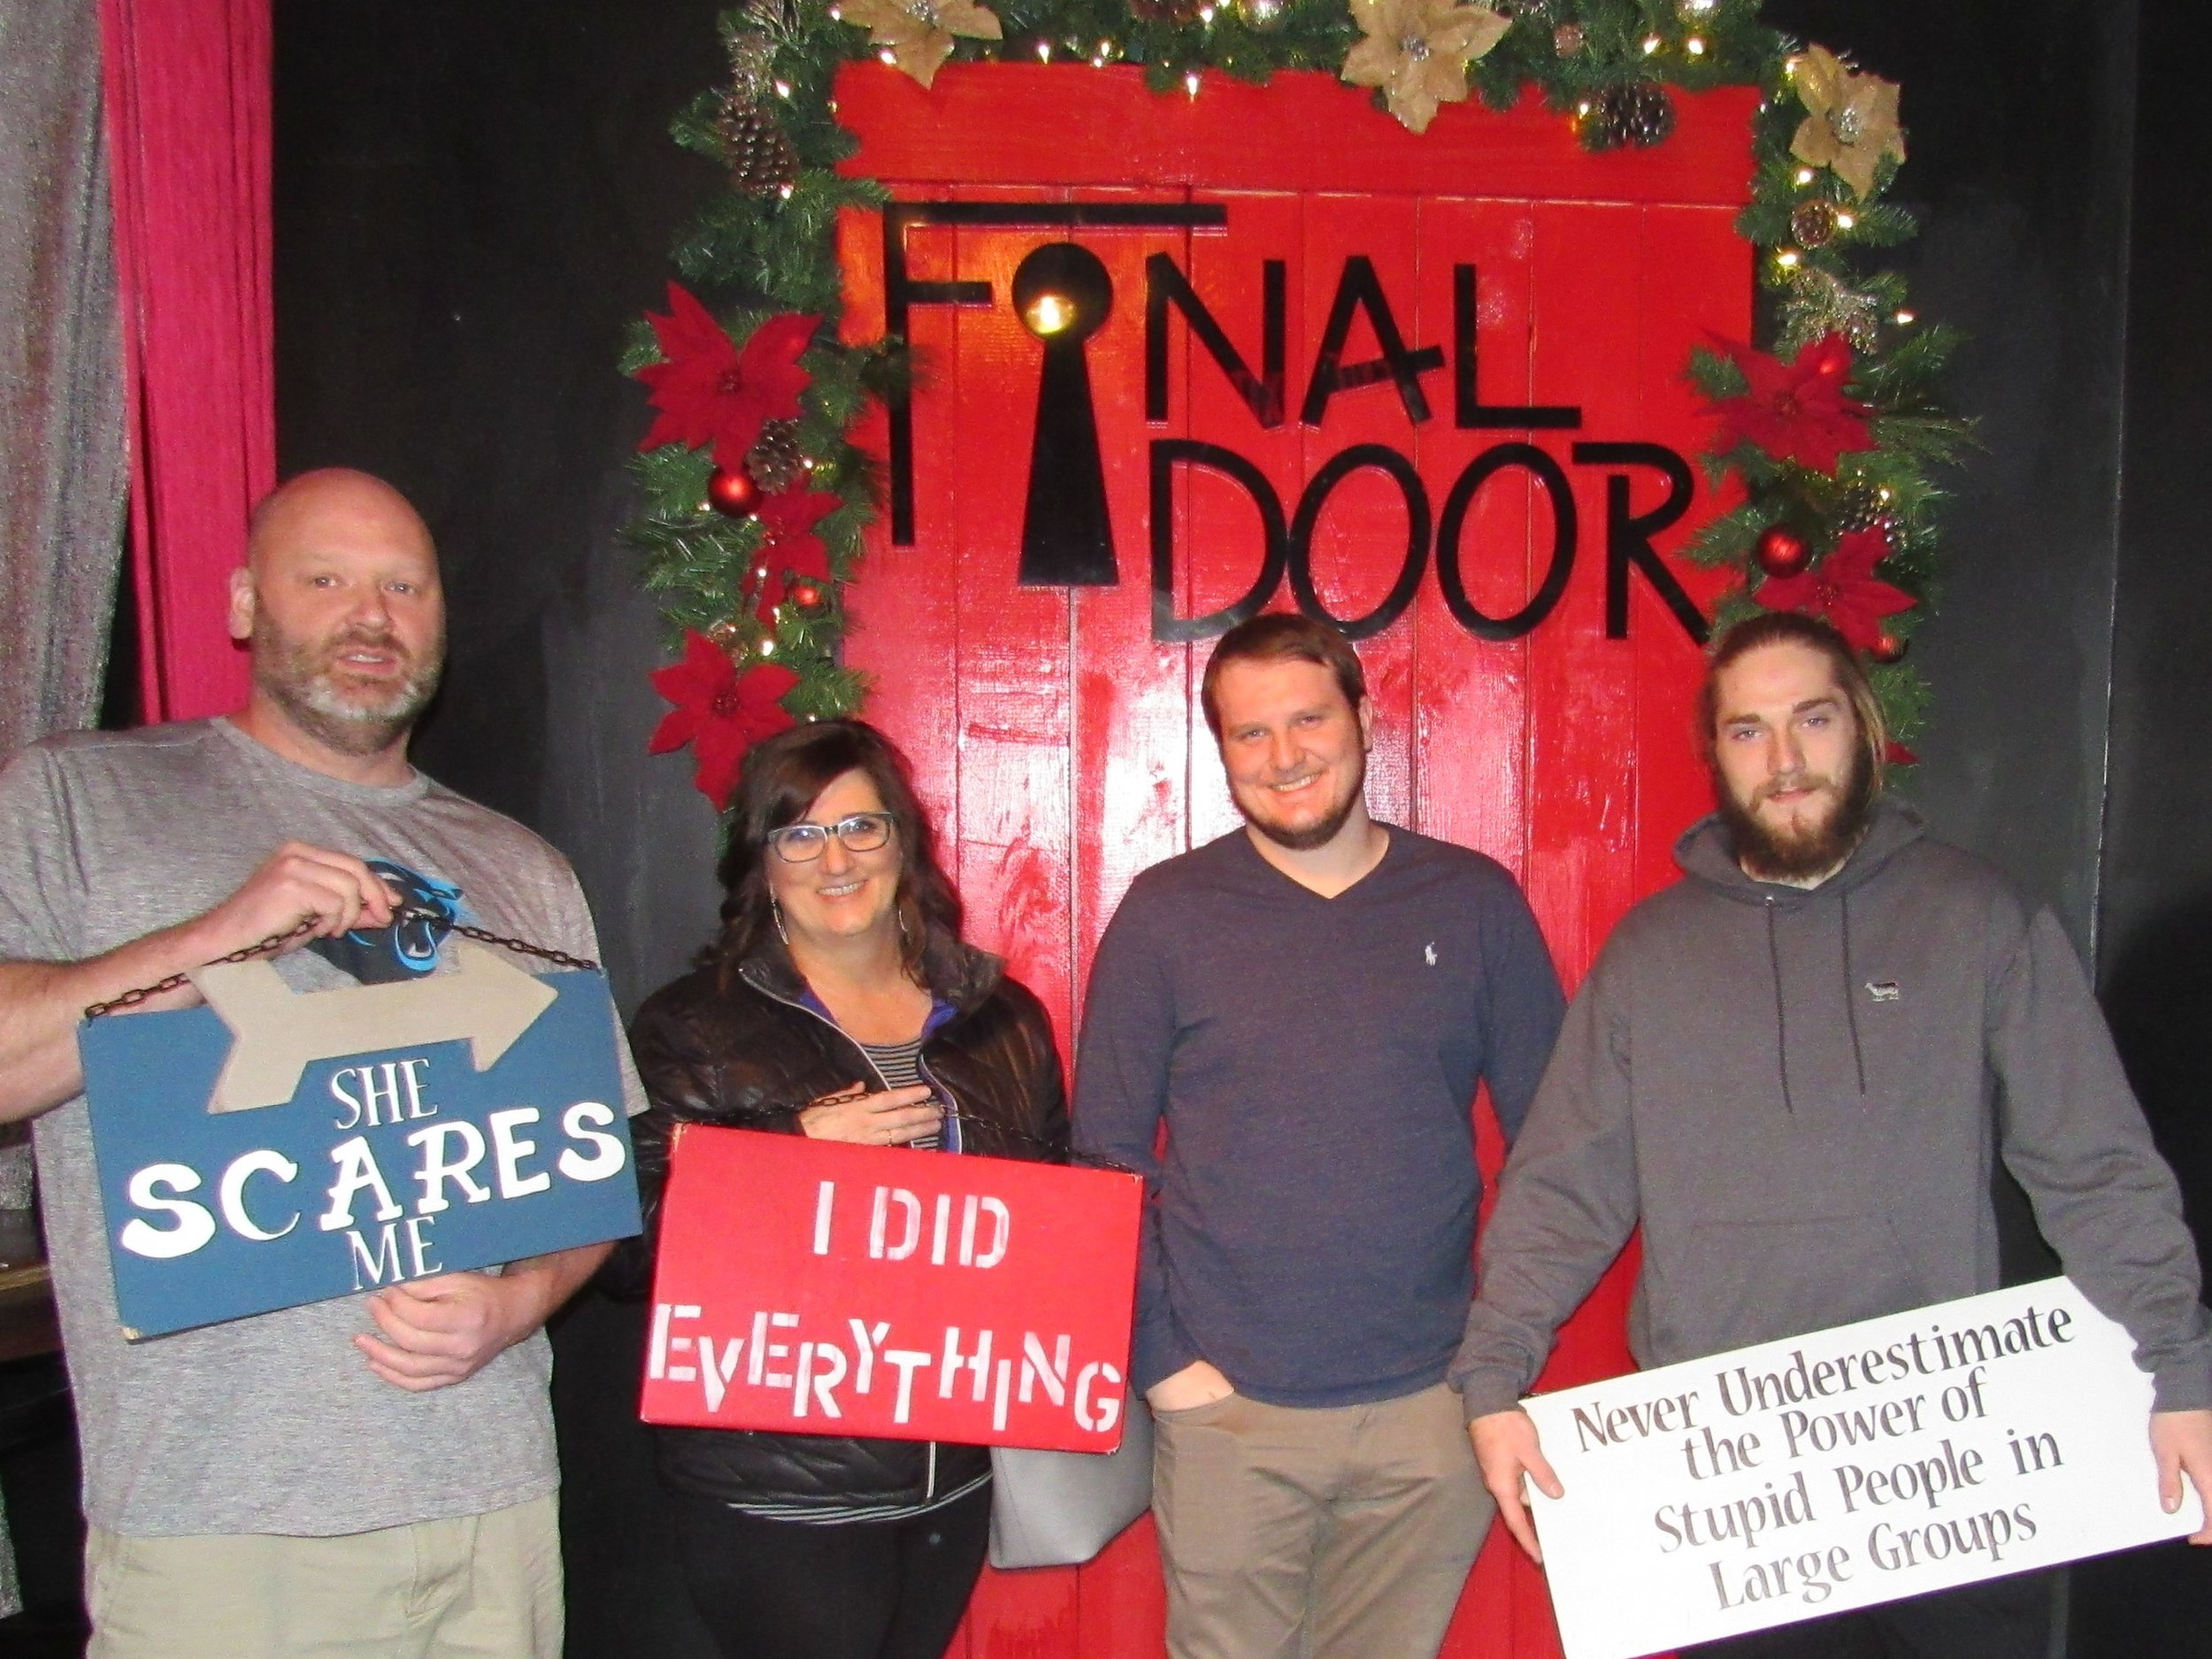 the-final-door-escape-room-columbia-sc-team-photos-jan-1-18-02.JPG